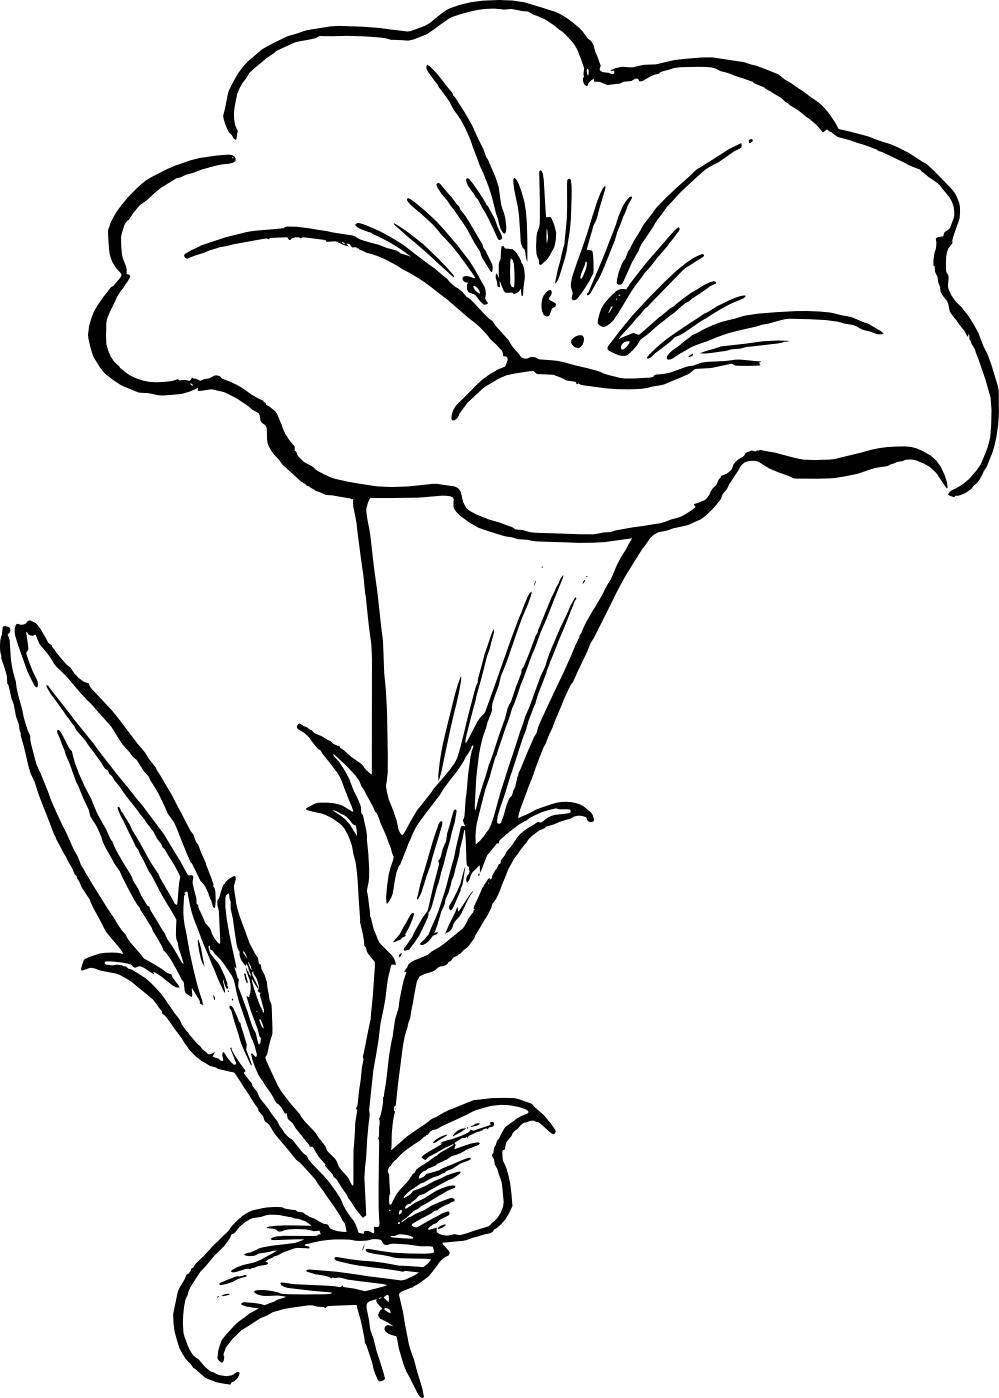 Flower Clipart Images Black And White - clipartsgram clipartall clipartall.com